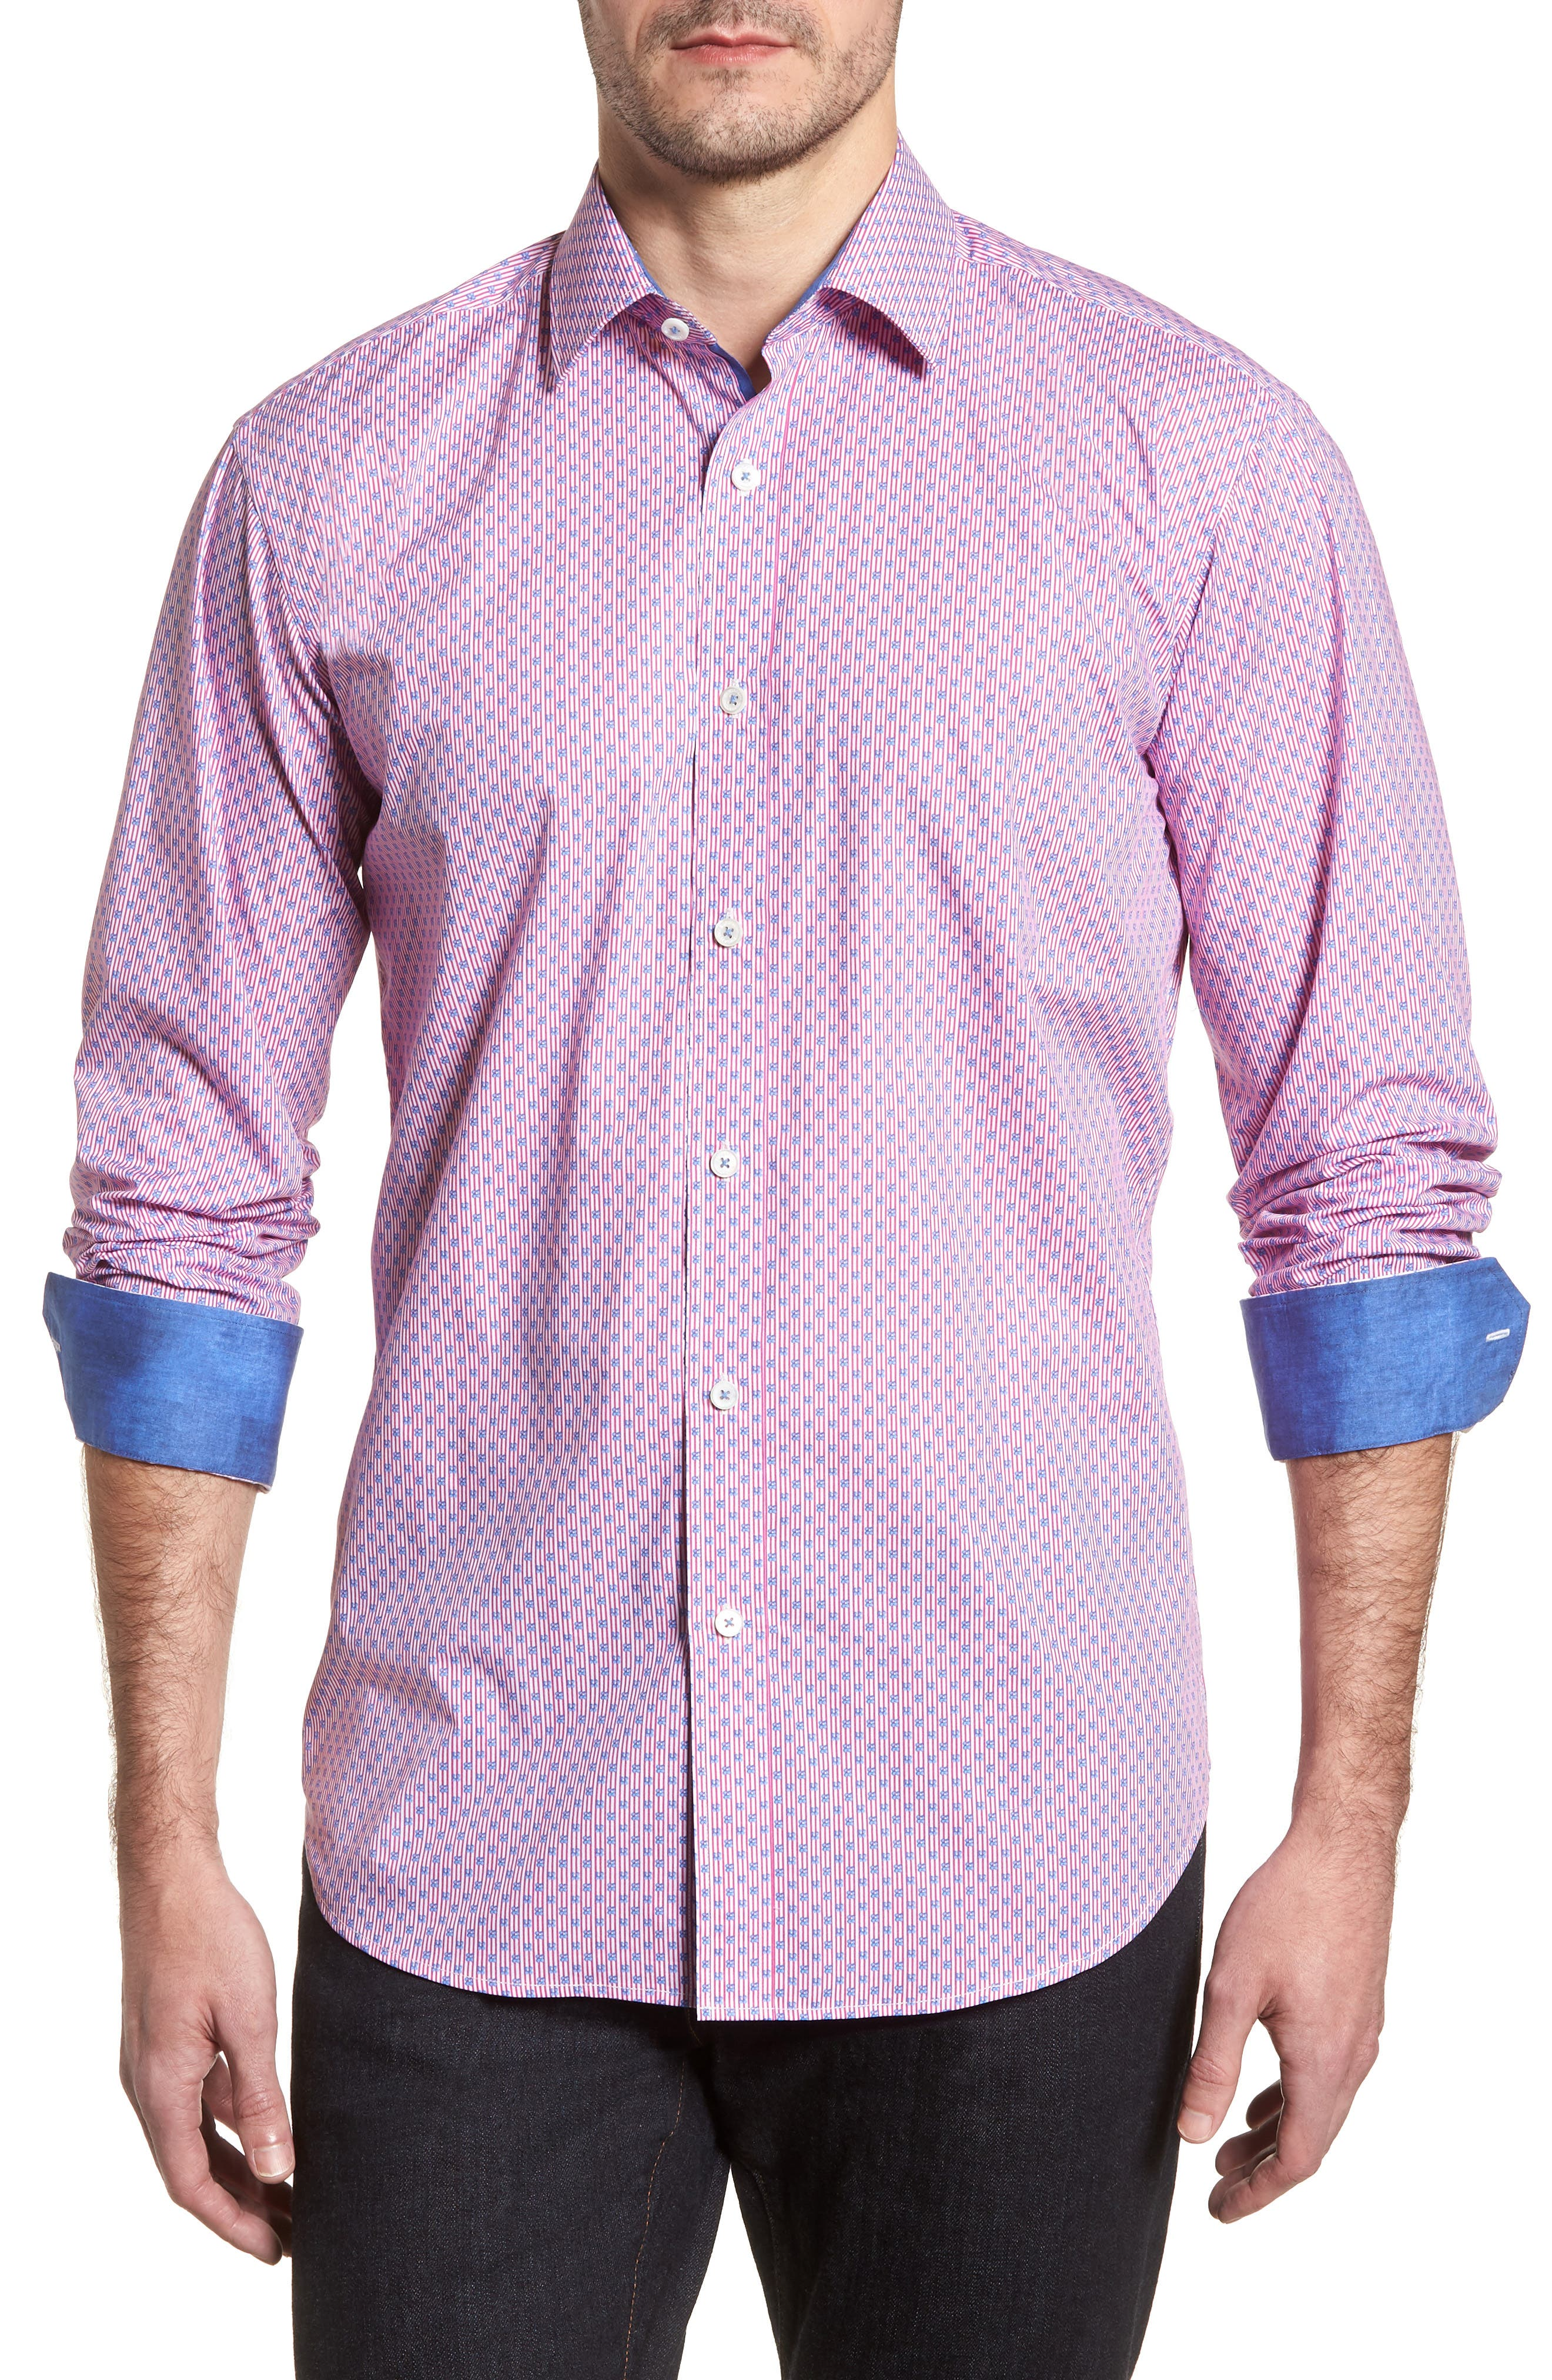 Flowers & Pinstripes Shaped Fit Sport Shirt,                             Main thumbnail 1, color,                             682